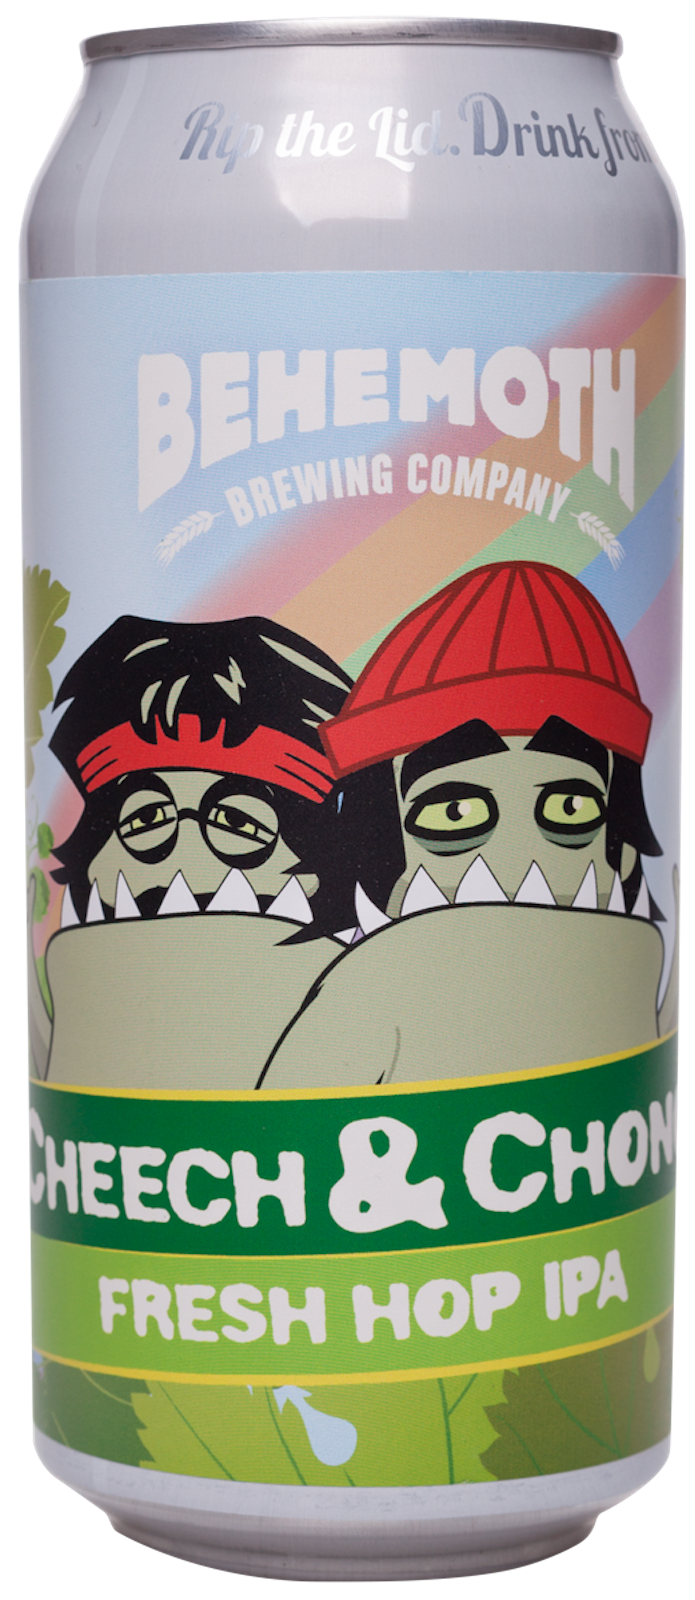 Cheech & Chong Fresh Hop IPA